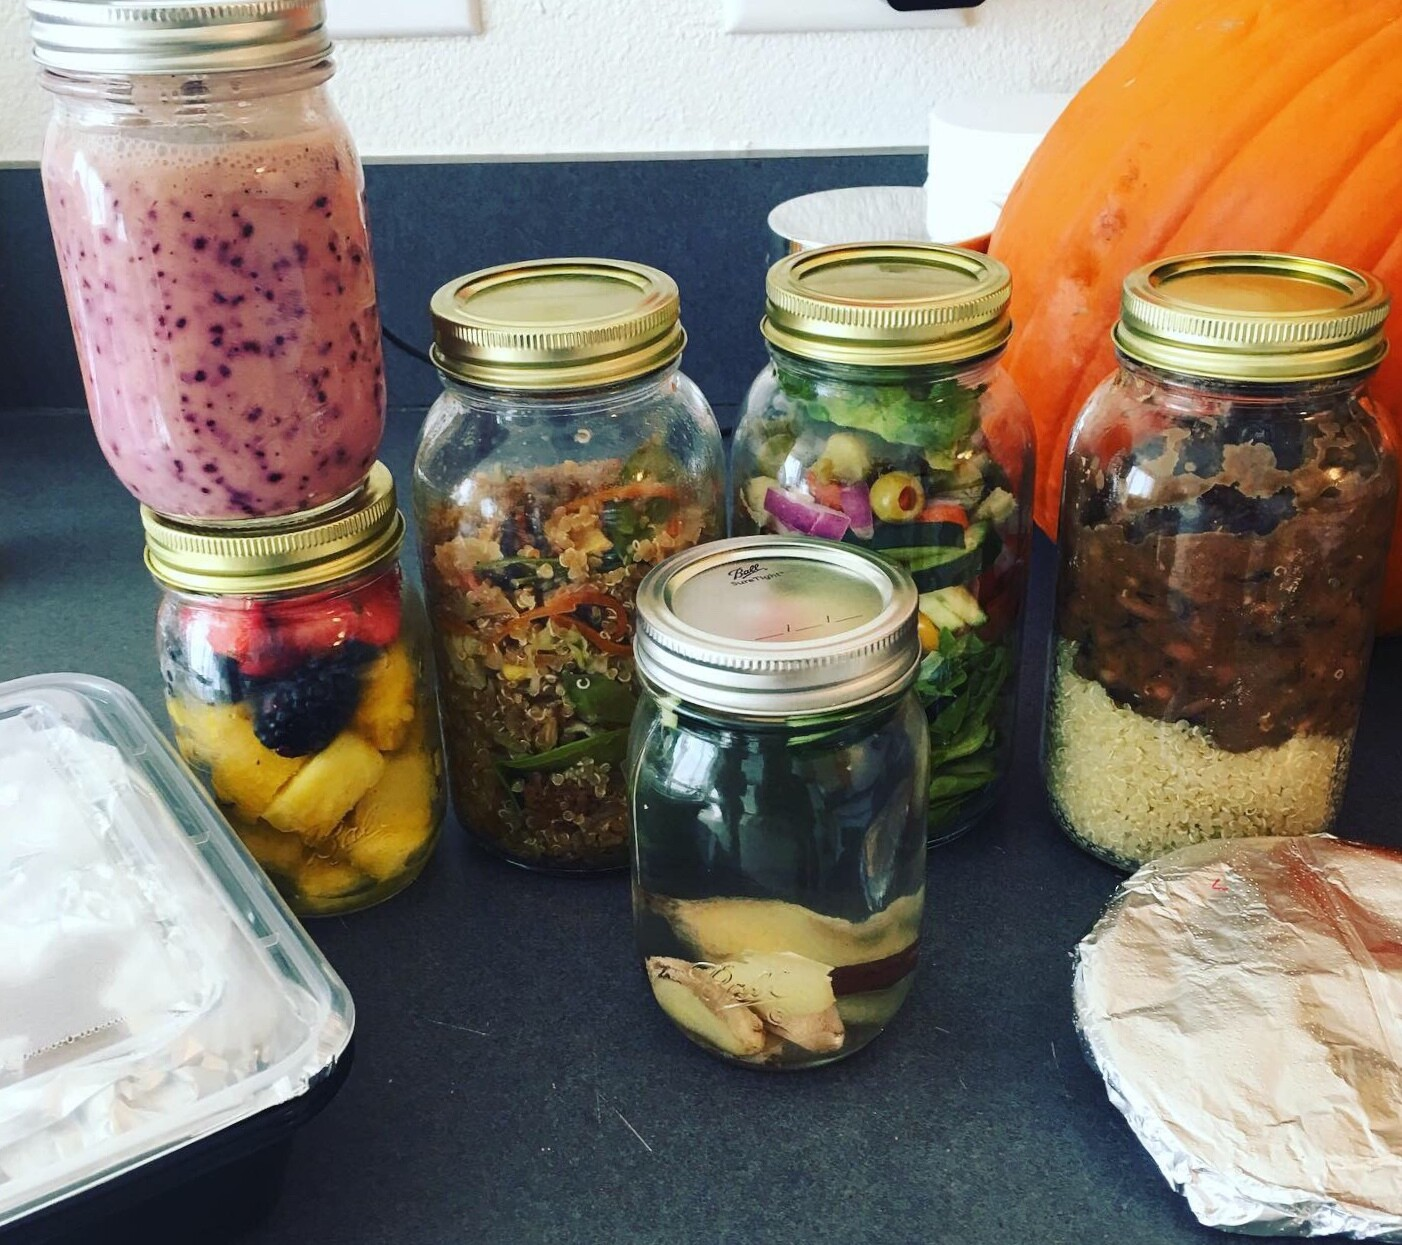 The Loyal Vegan Meal Prep Delivery service